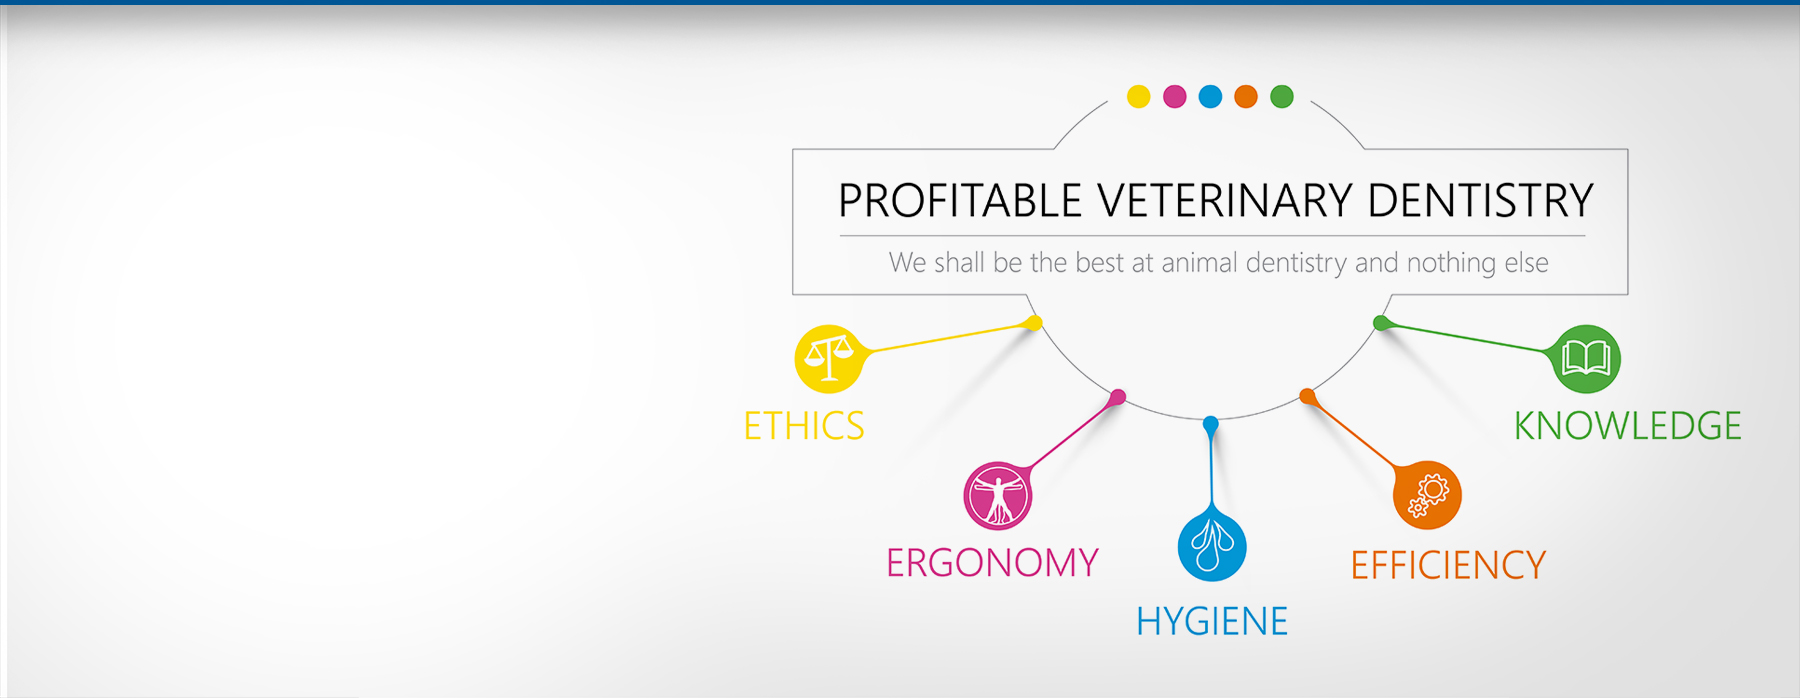 Profitable Veterinary Dentistry <br />- Our Philosophy